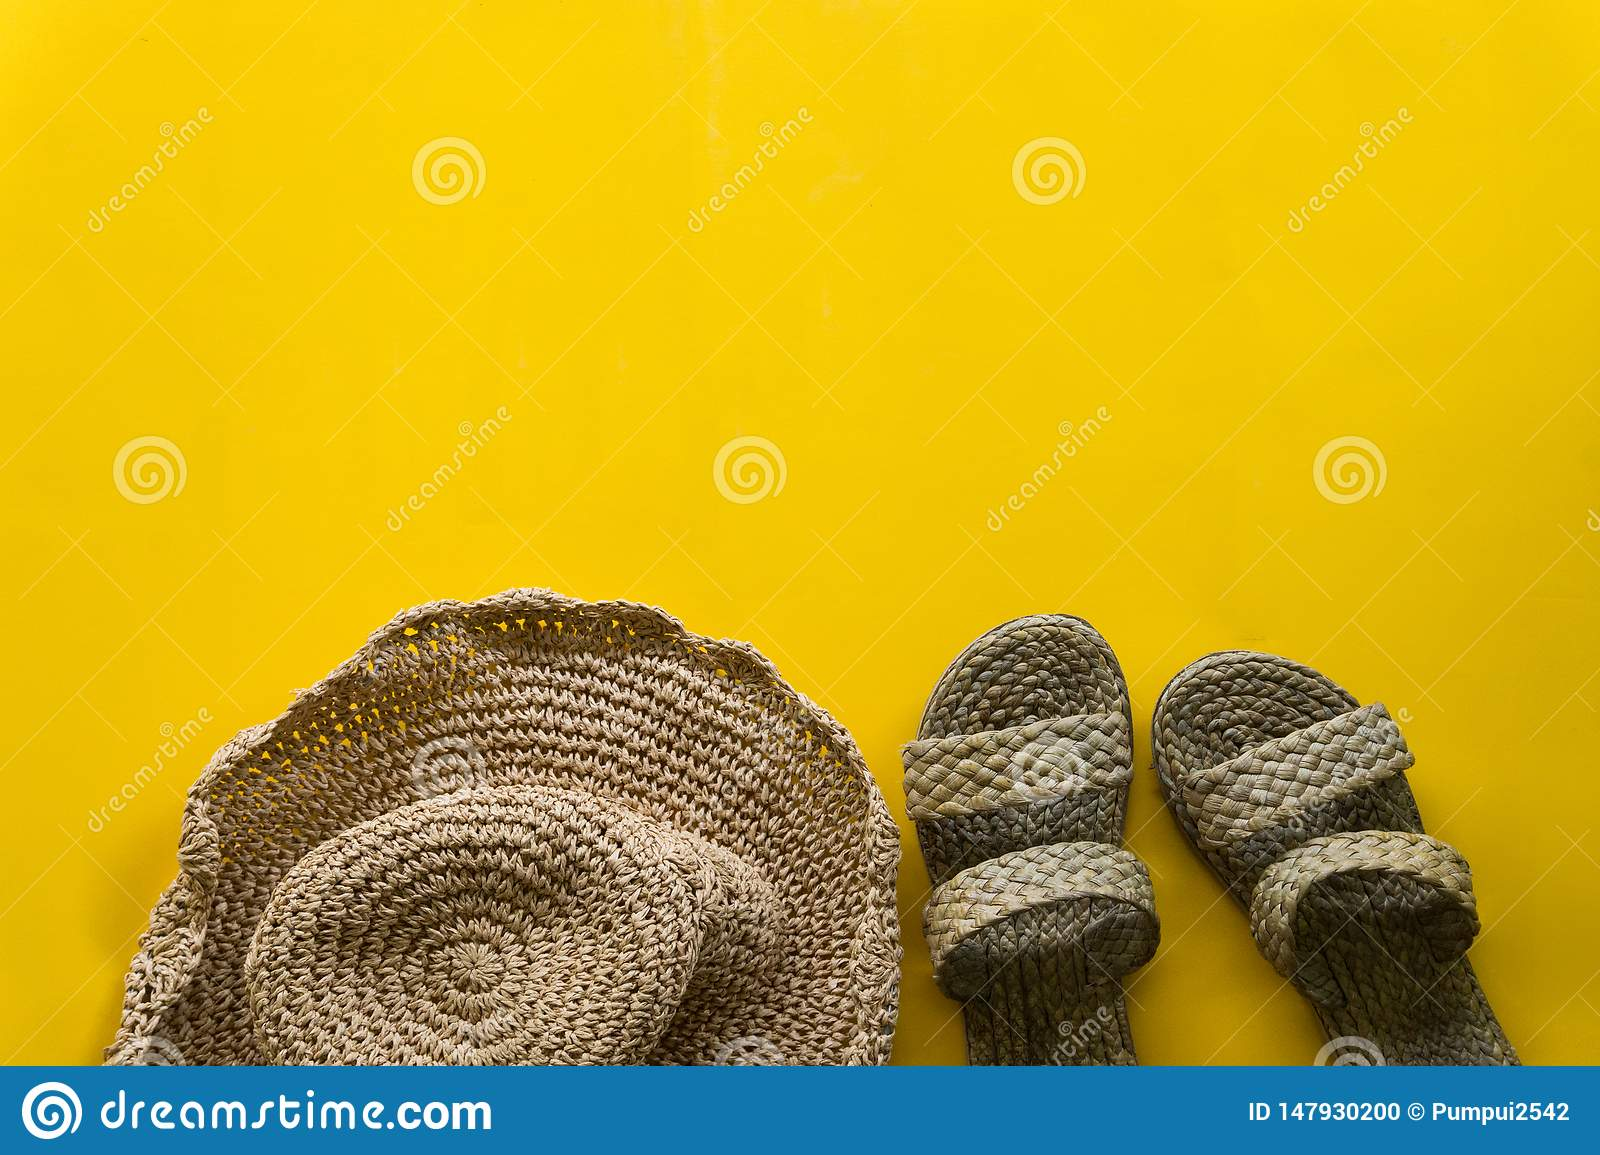 Summer hat weave and sandal weave with yellow background